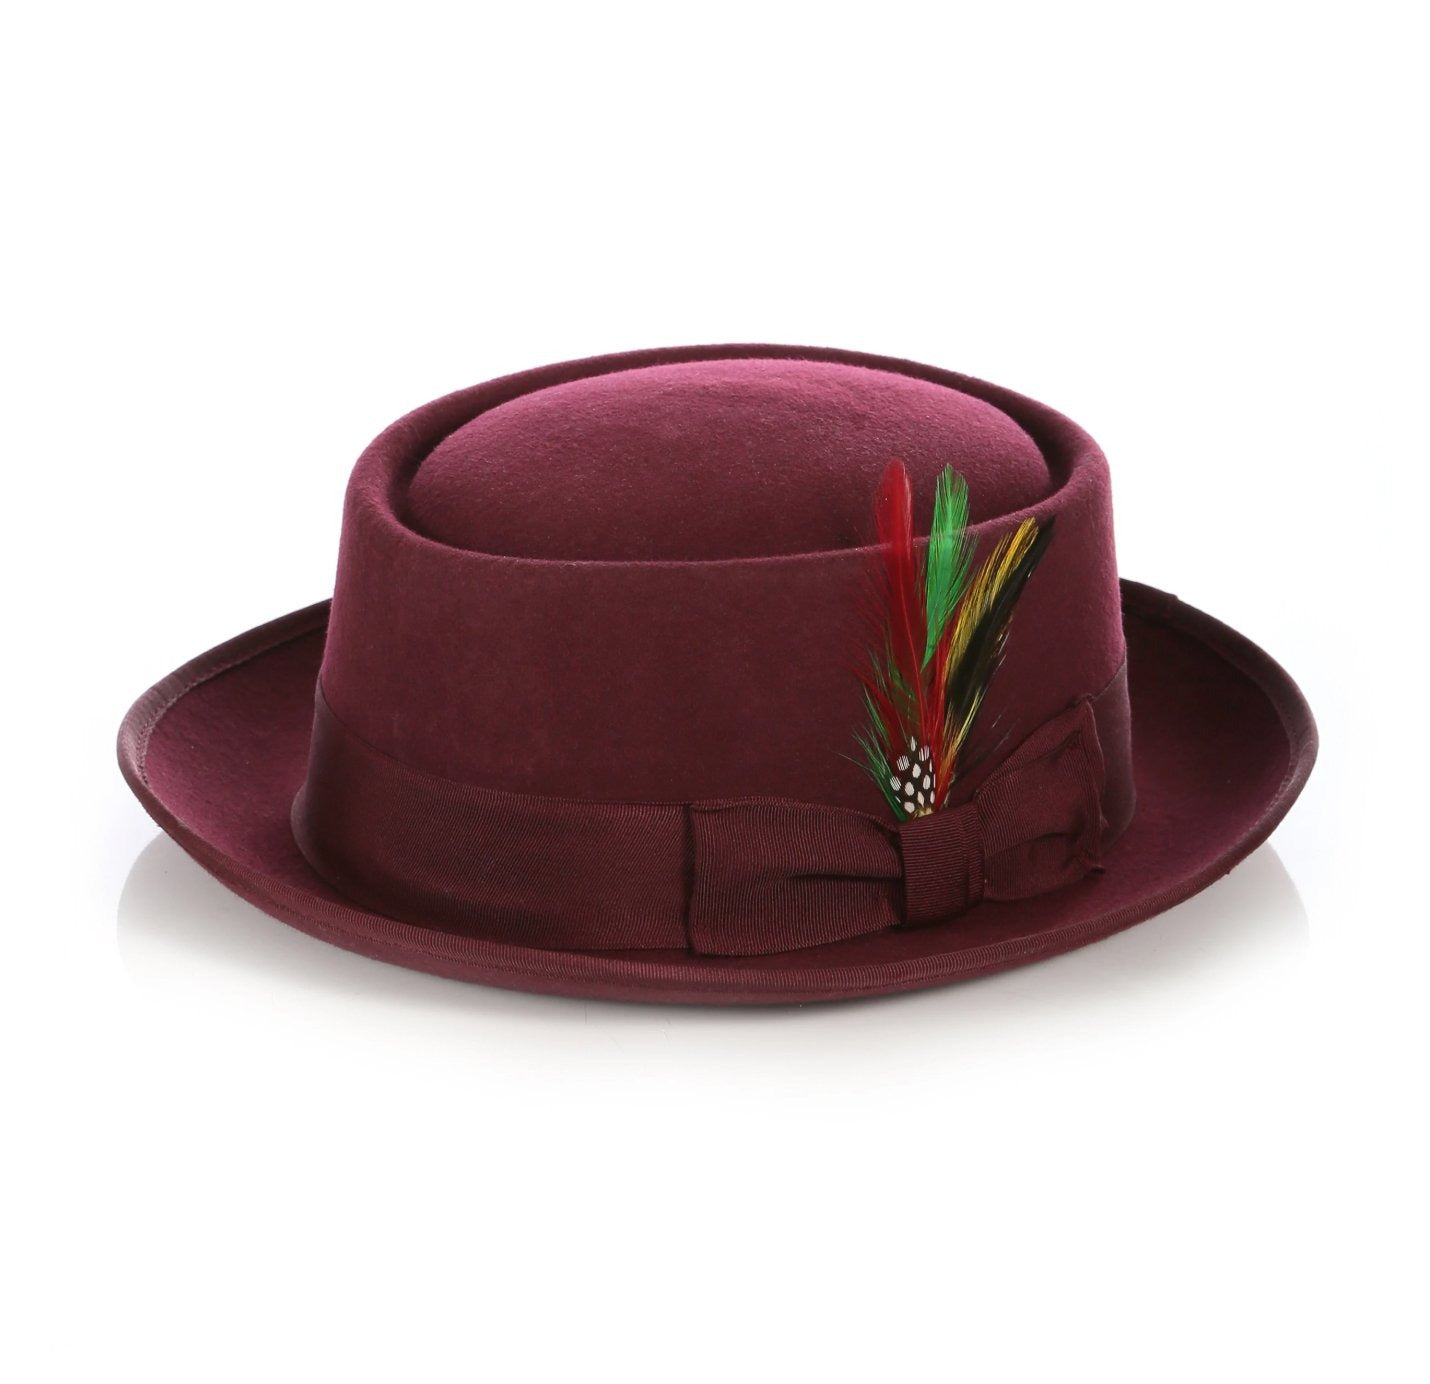 Mens Pork Pie Hat in Burgundy